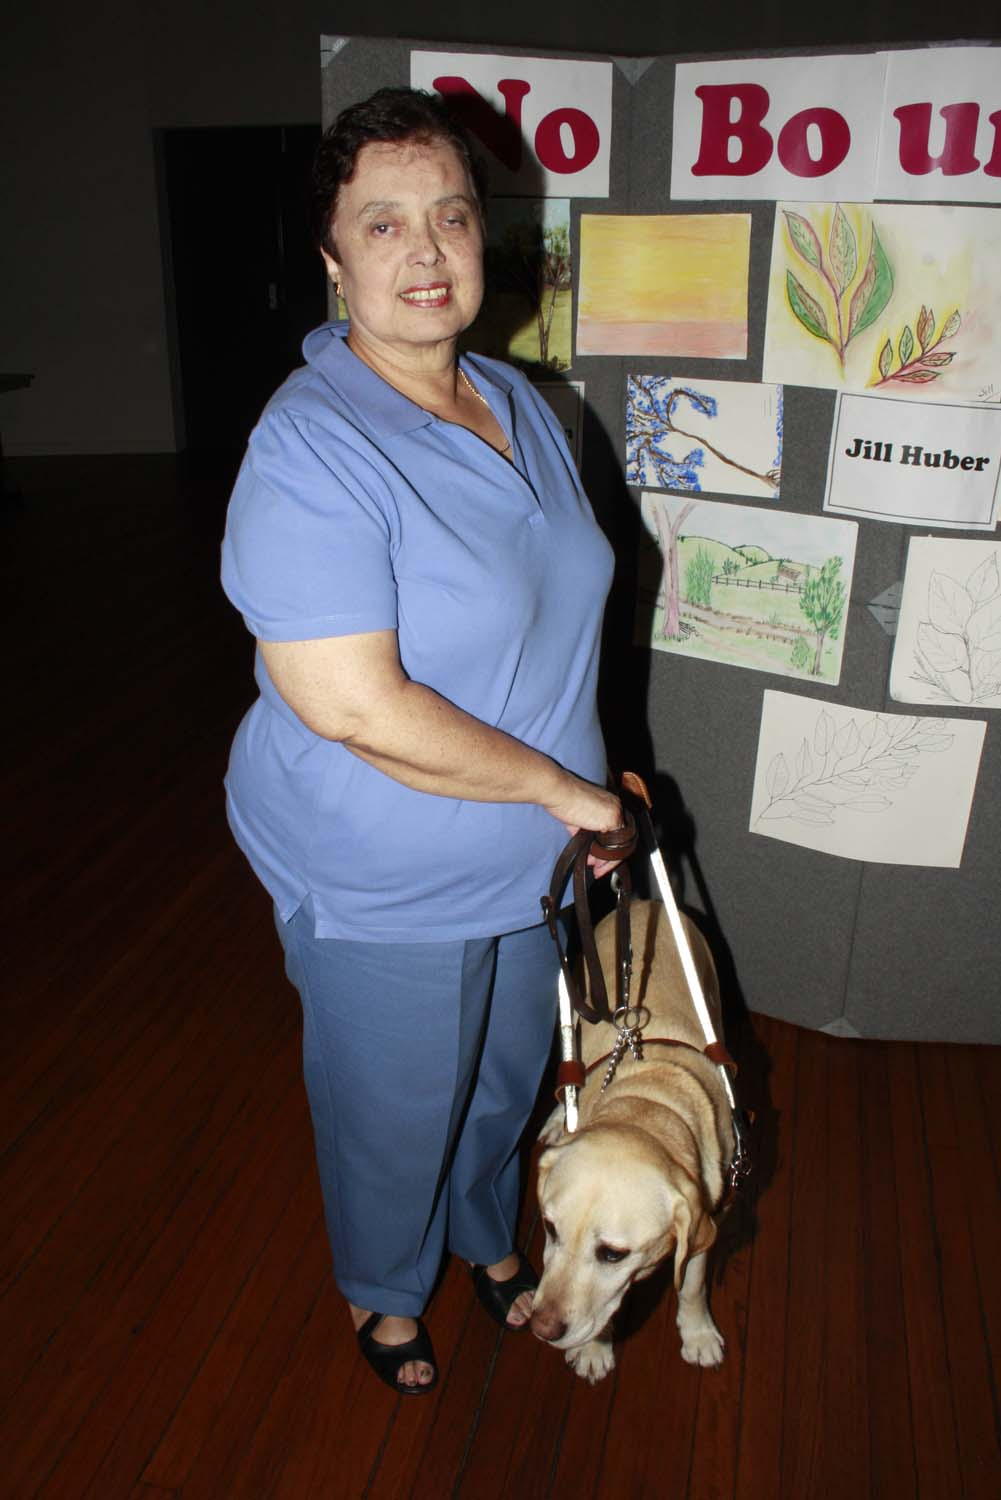 Jill Huber with her artwork and guide dog